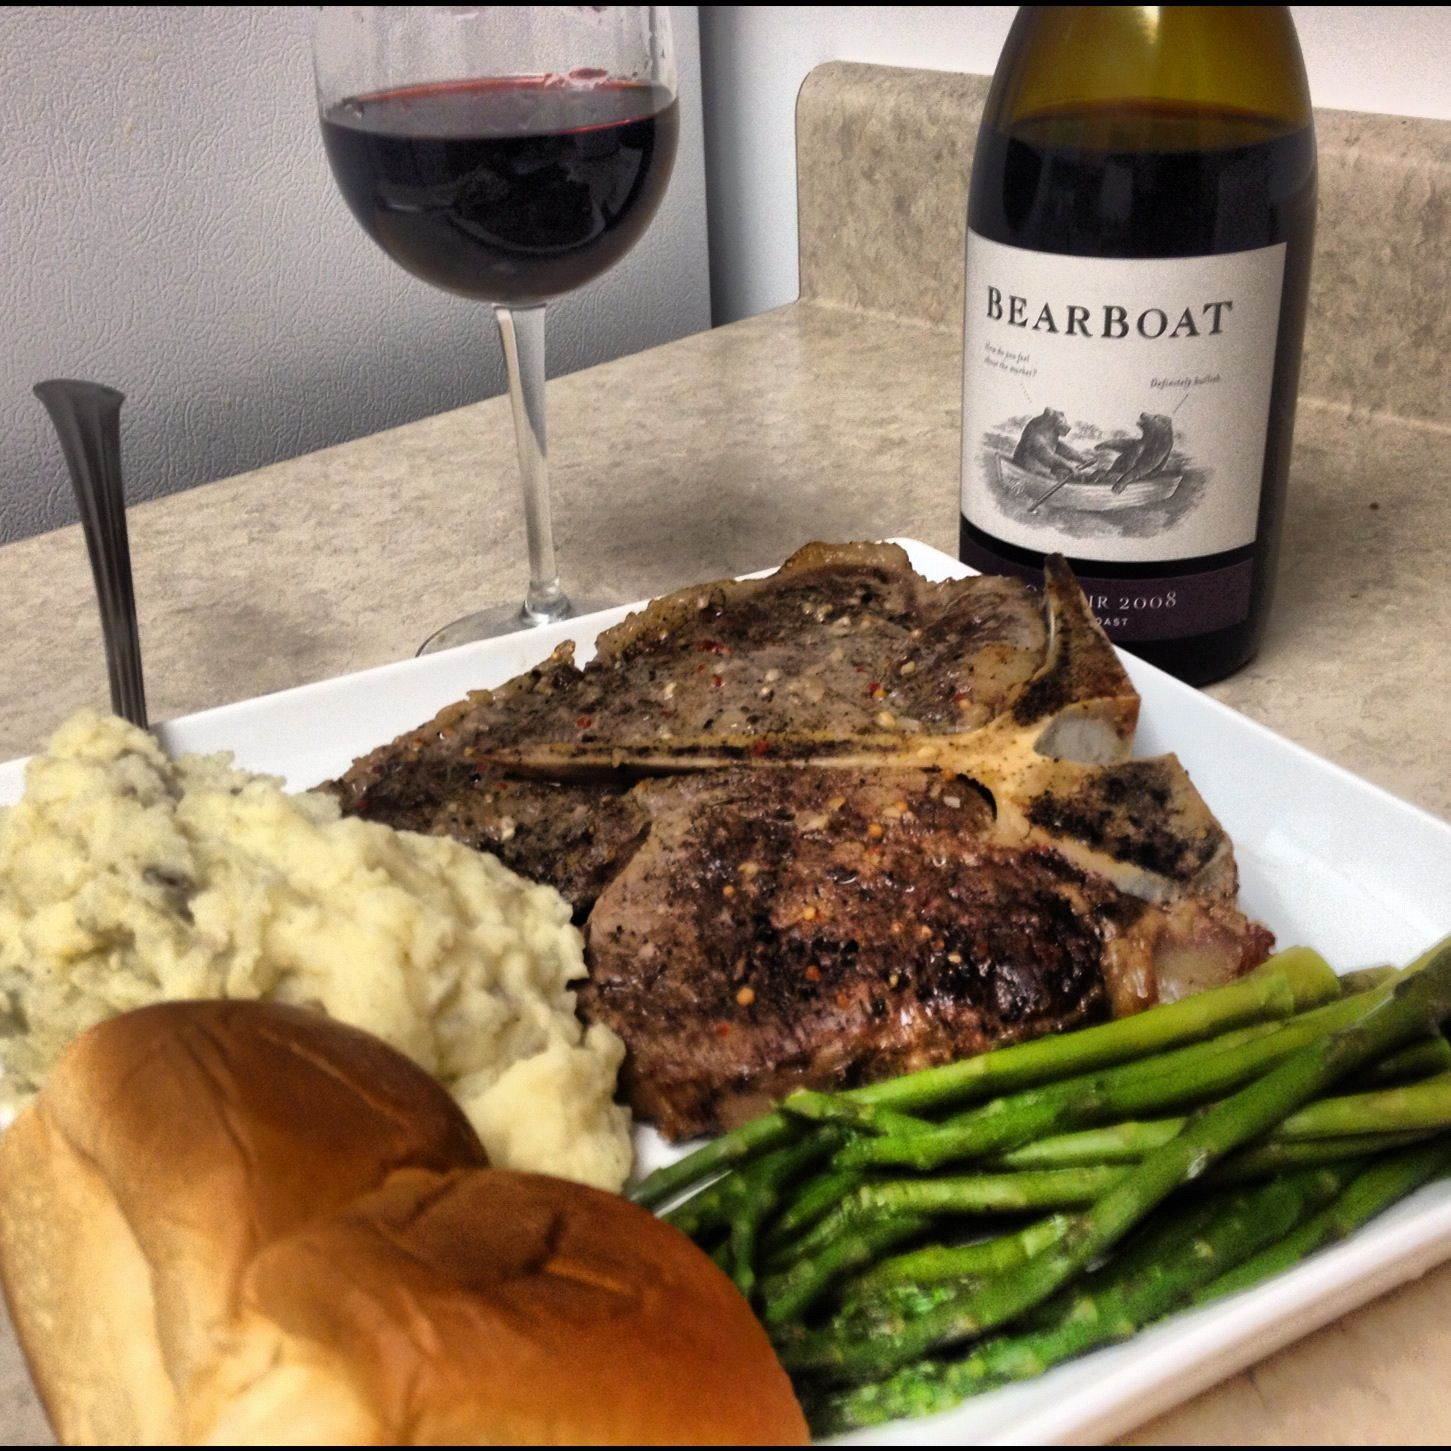 Steak, Mashed Potatoes, Asparagus, Red Wine.